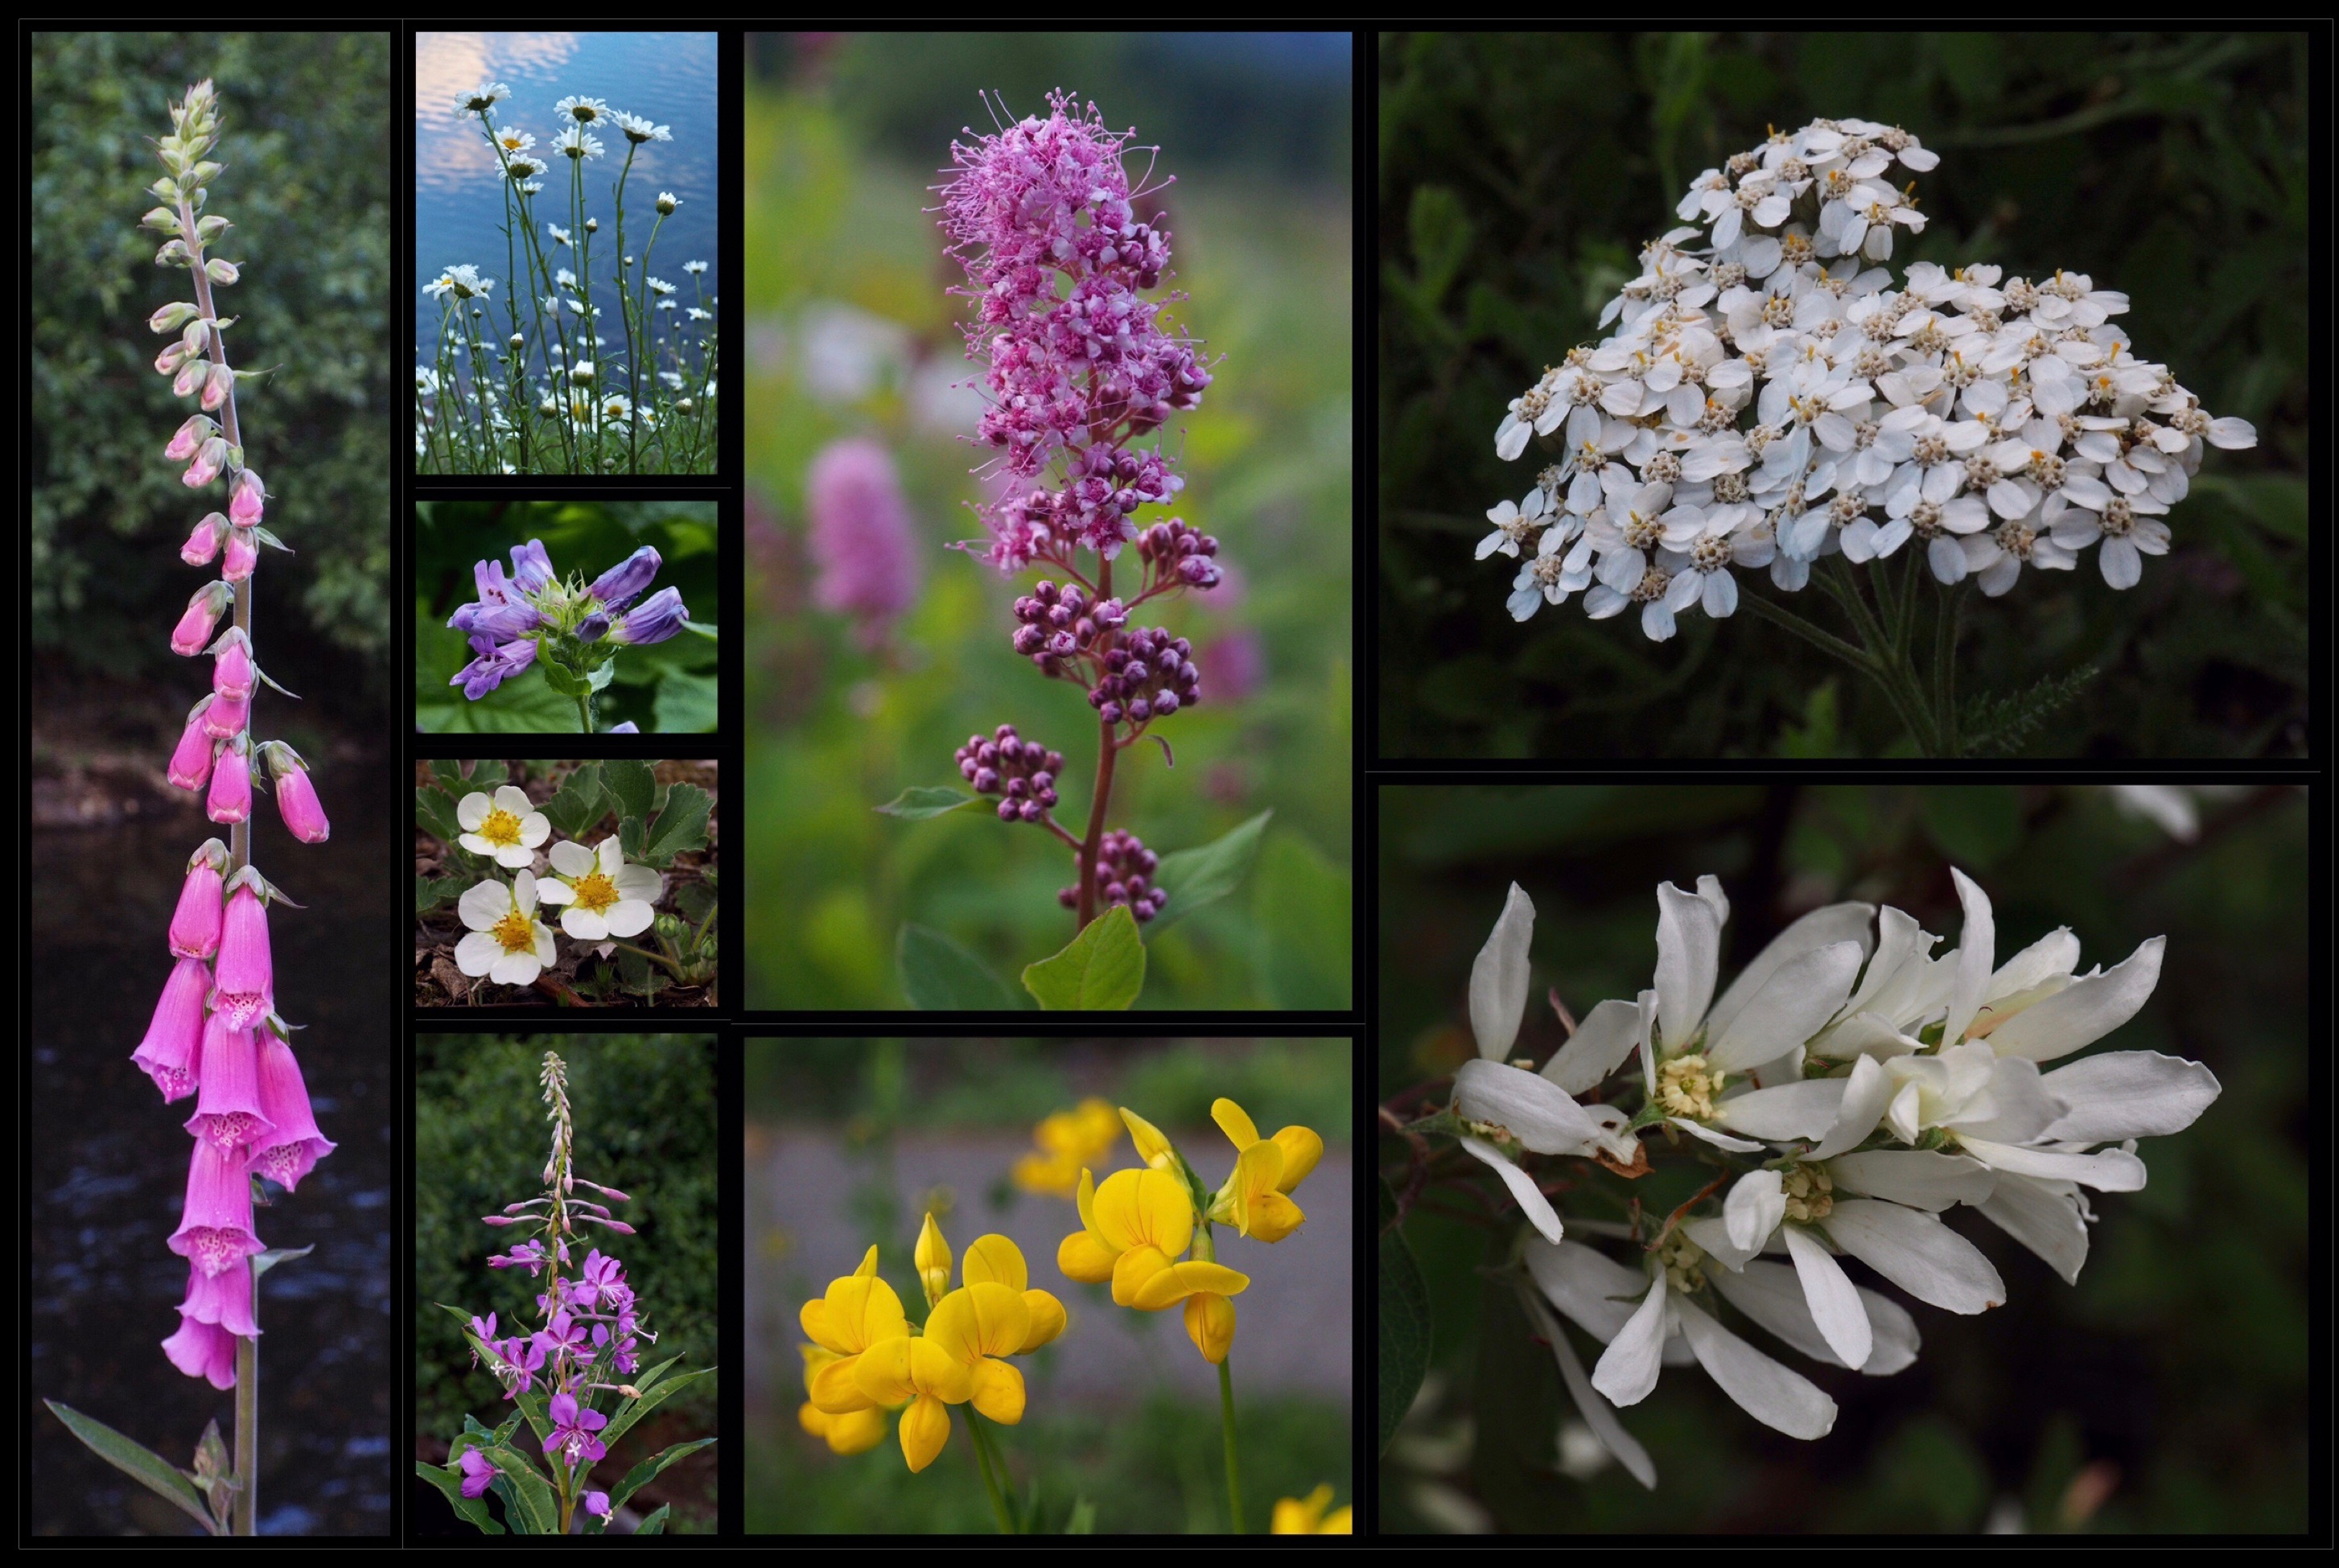 Around the picnic area and in forest openings along the loop trail, look for additional wildflowers, including common, or, purple foxgloves (Digitalis purpurea) (first column); oxeye daisies (Leucanthemum vulgare) (second column, top); Cascade beardtongues (Penstemon serrulatus) (second column, upper center); blueleaf strawberries (Fragaria virginiana) (second column, lower center); fireweed (Chamerion angustifolium) (second column, bottom); rose or Douglas's spirea, a.k.a. hardhack (Spiraea douglasii) (third column, top); birdsfoot deervetch, or, birdsfoot trefoil (Lotus corniculatus) (third column, bottom); common yarrow (Achillea millefolium) (fourth column, top); and western serviceberries (Amelanchier alnifolia) (fourth column, bottom). Gold Creek Pond Loop, July 08 and 10, 2018.